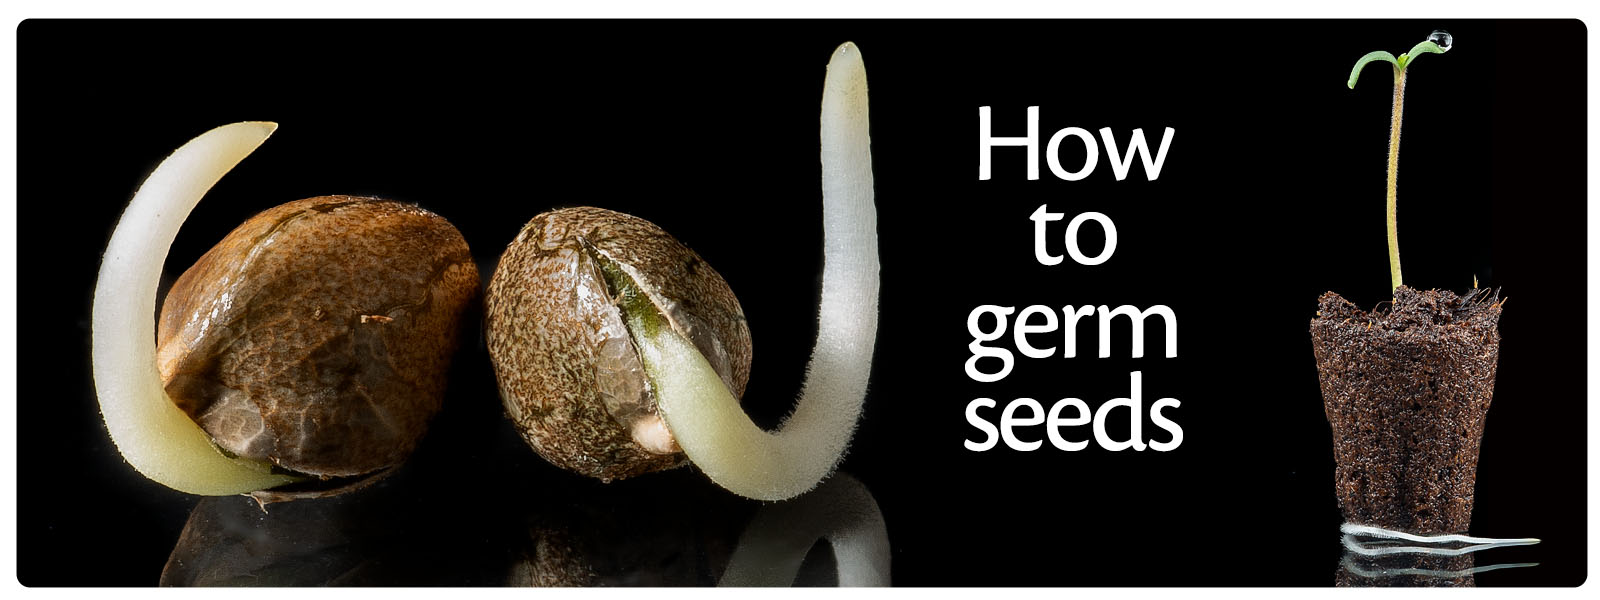 Tutorial what are the best ways to germinate your our cannabis seeds